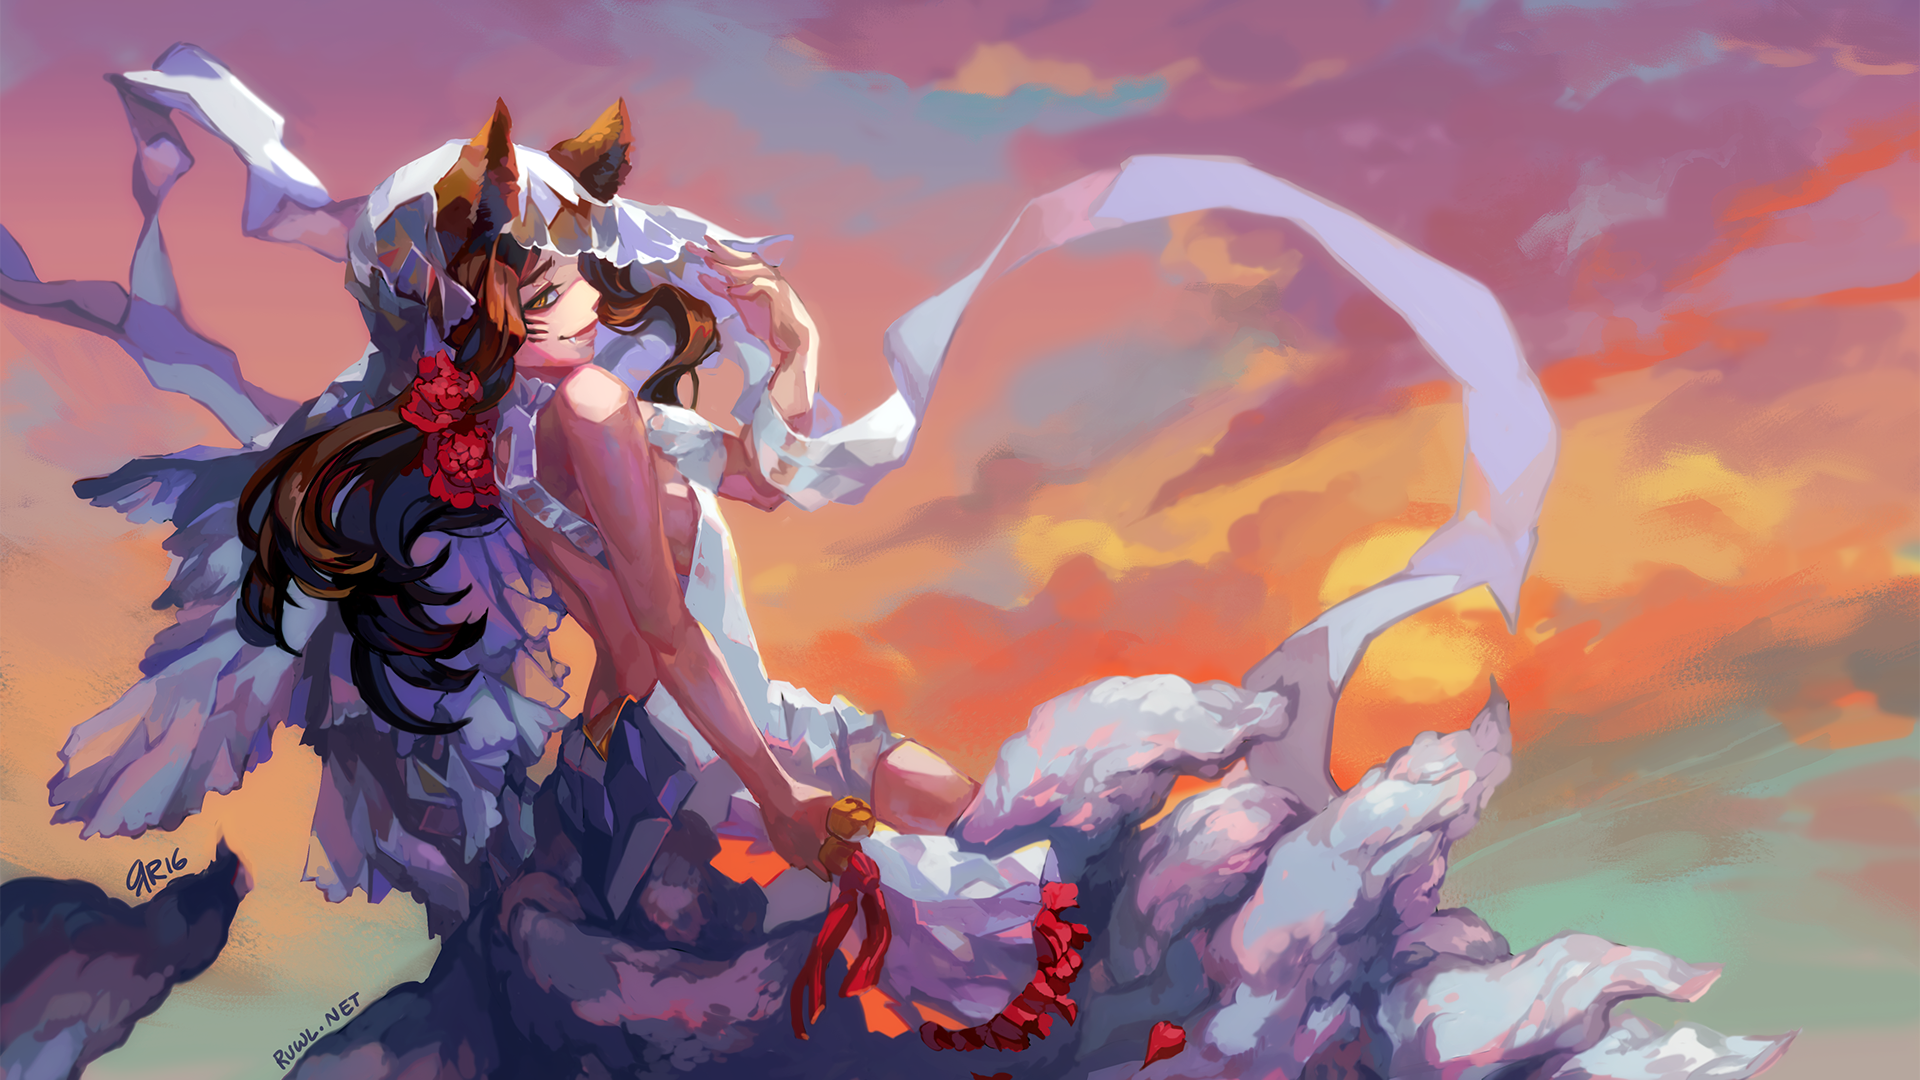 Wallpaper Ahri League Of Legends Gaming League Of Legends Hd